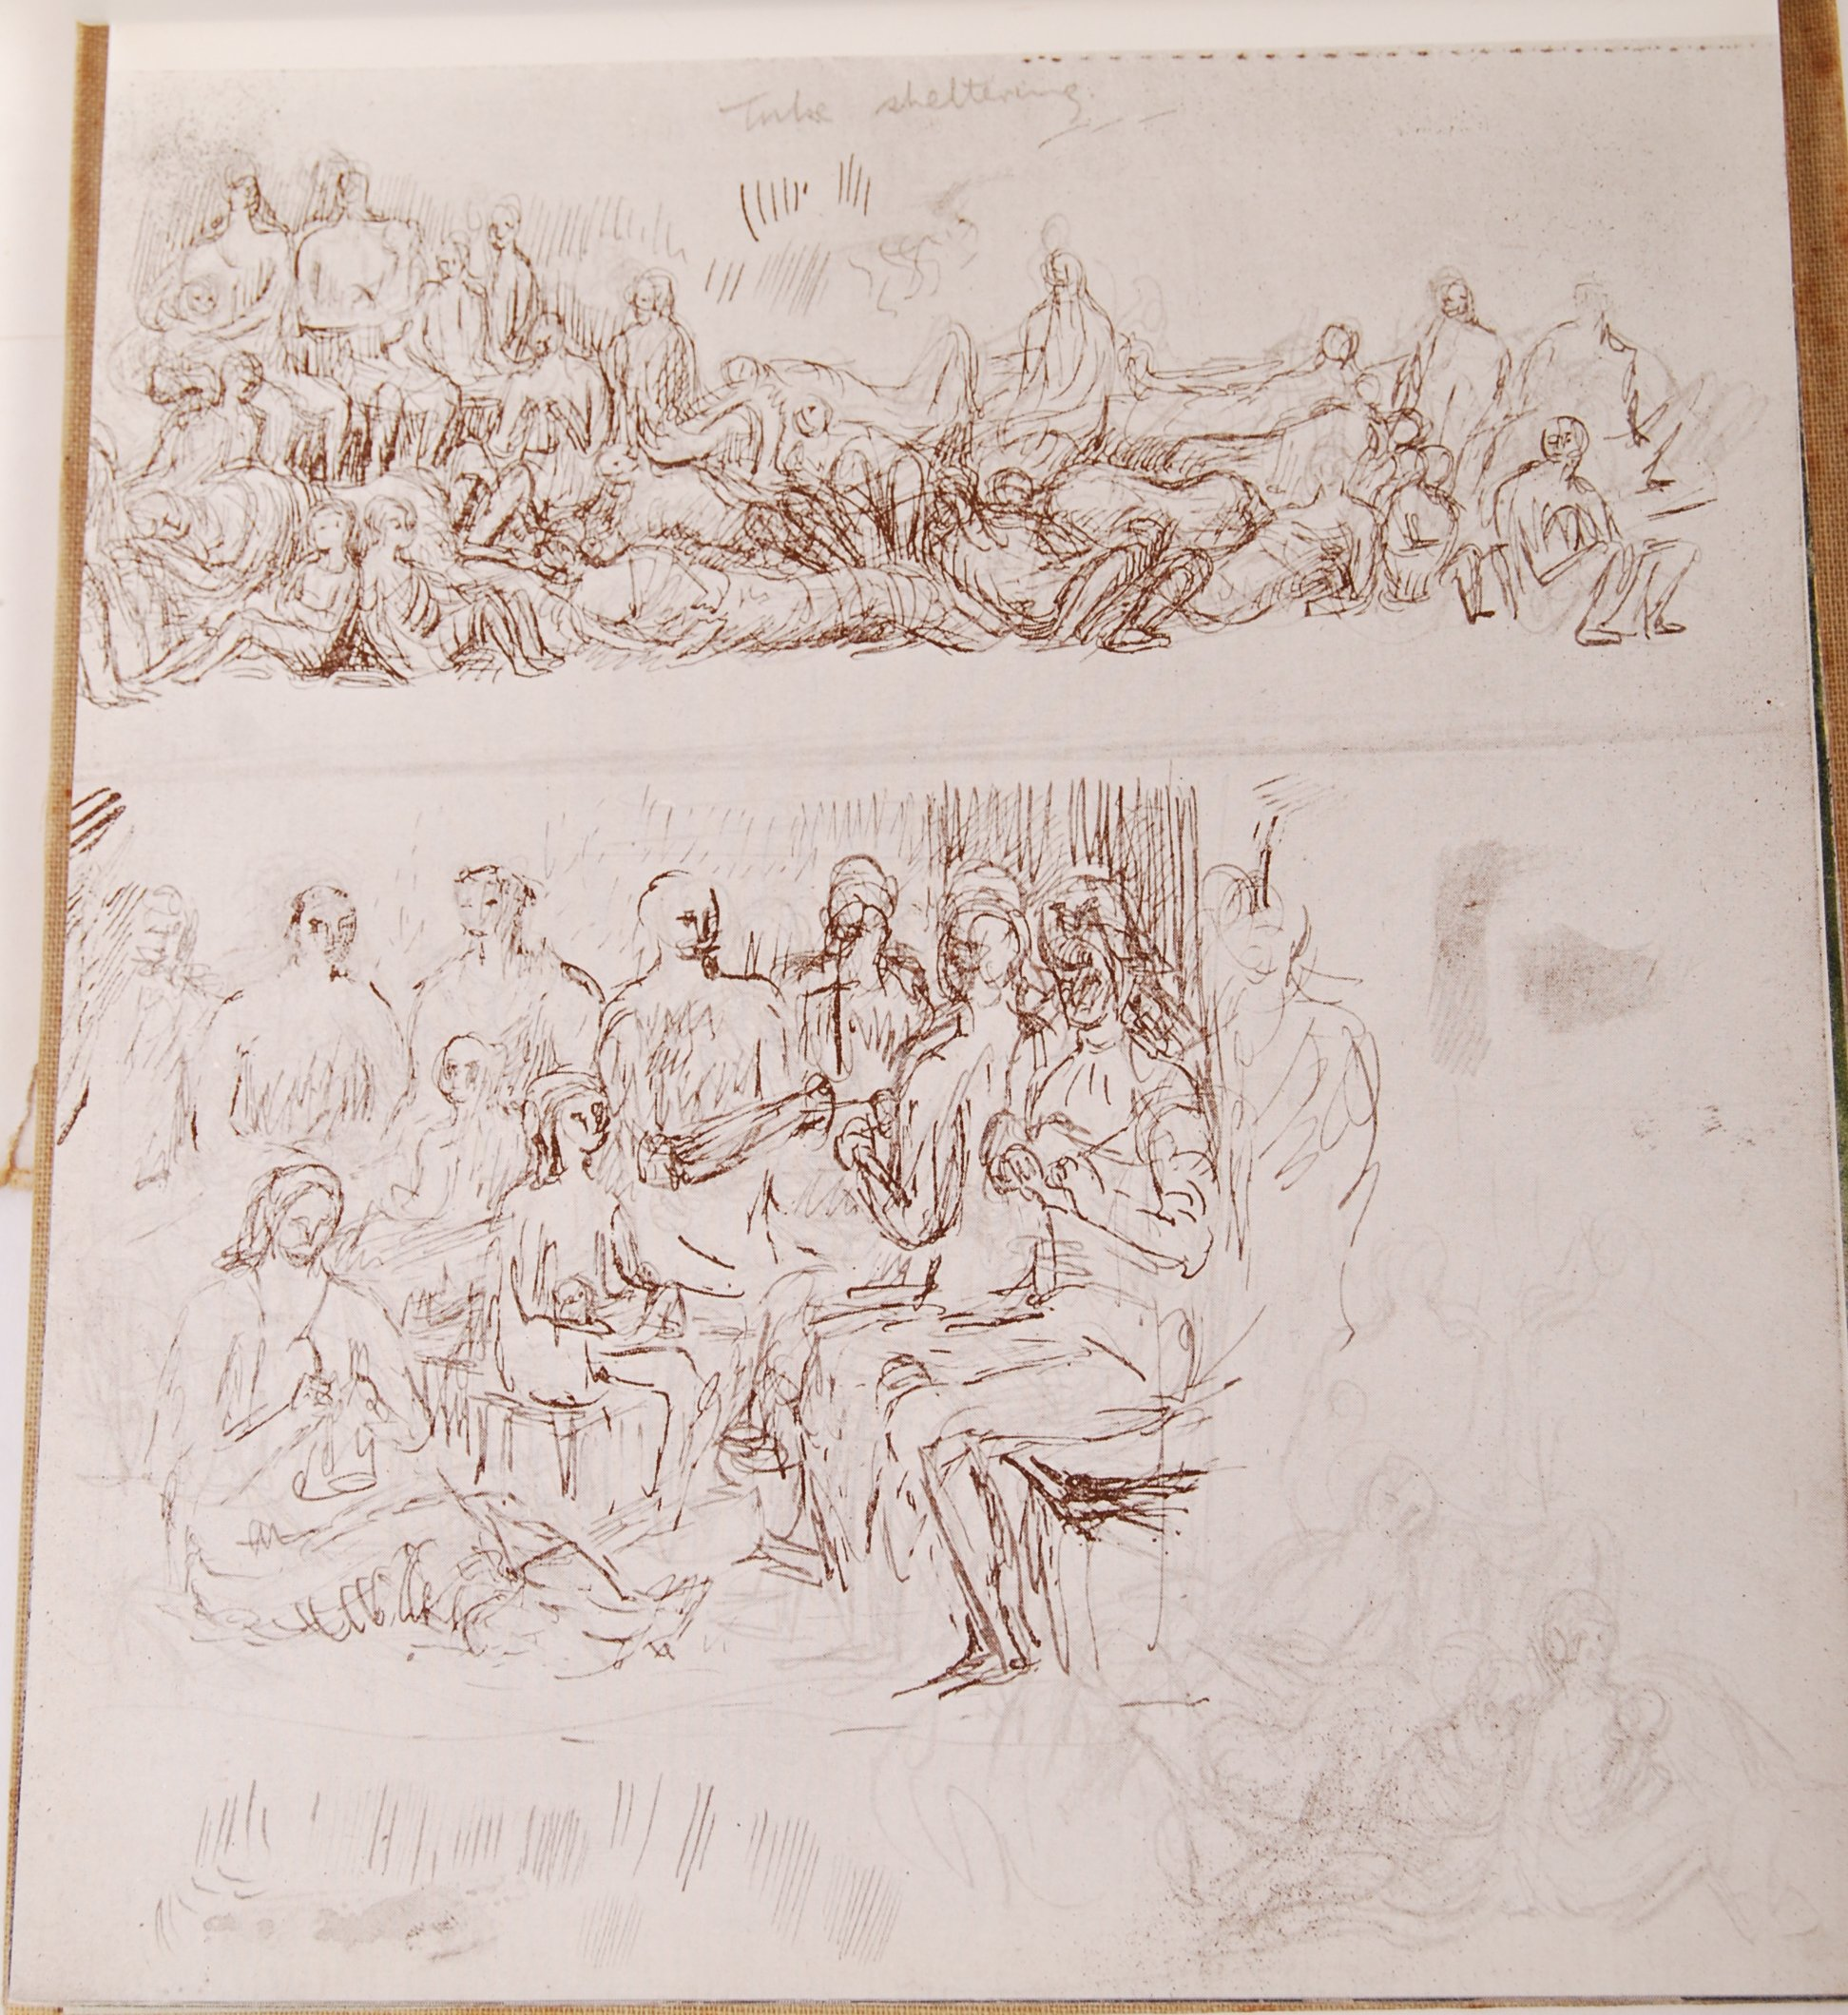 HENRY MOORE WWII SECOND WORLD WAR SHELTER SKETCH BOOK - Image 4 of 8